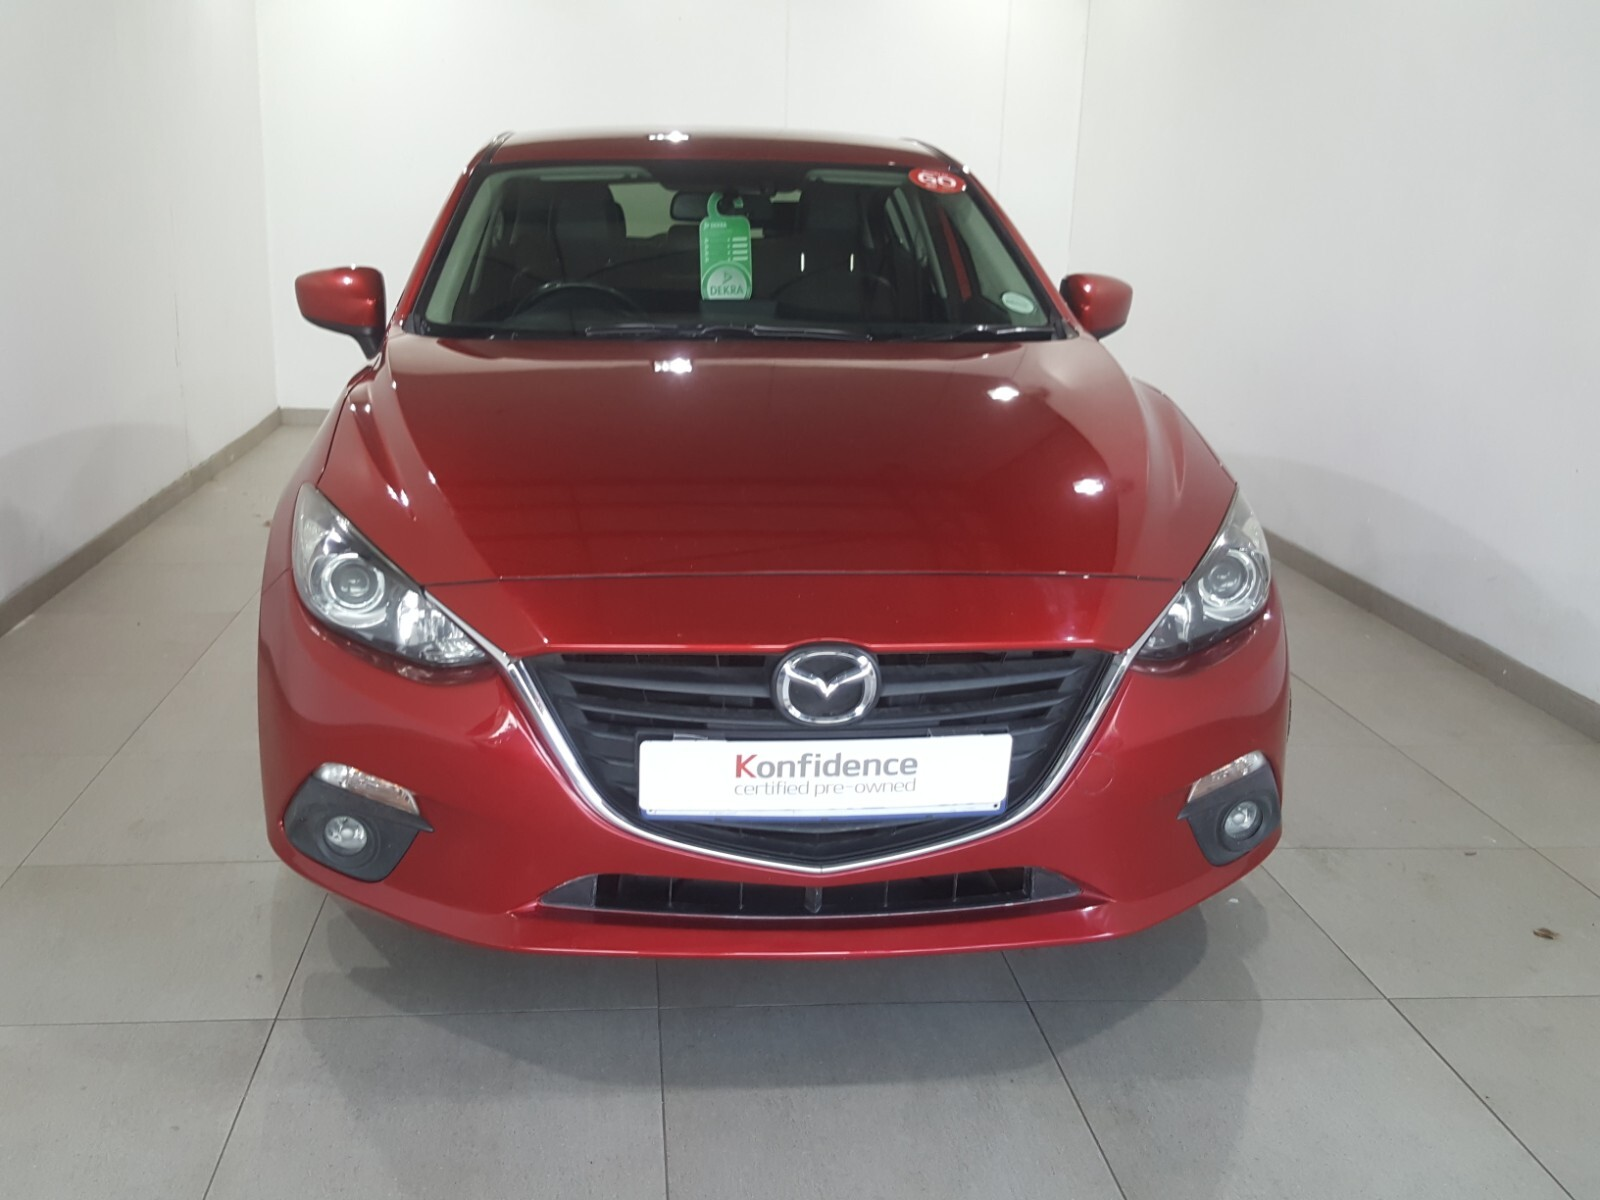 MAZDA 1.6 DYNAMIC 5DR A/T Roodepoort 1327025